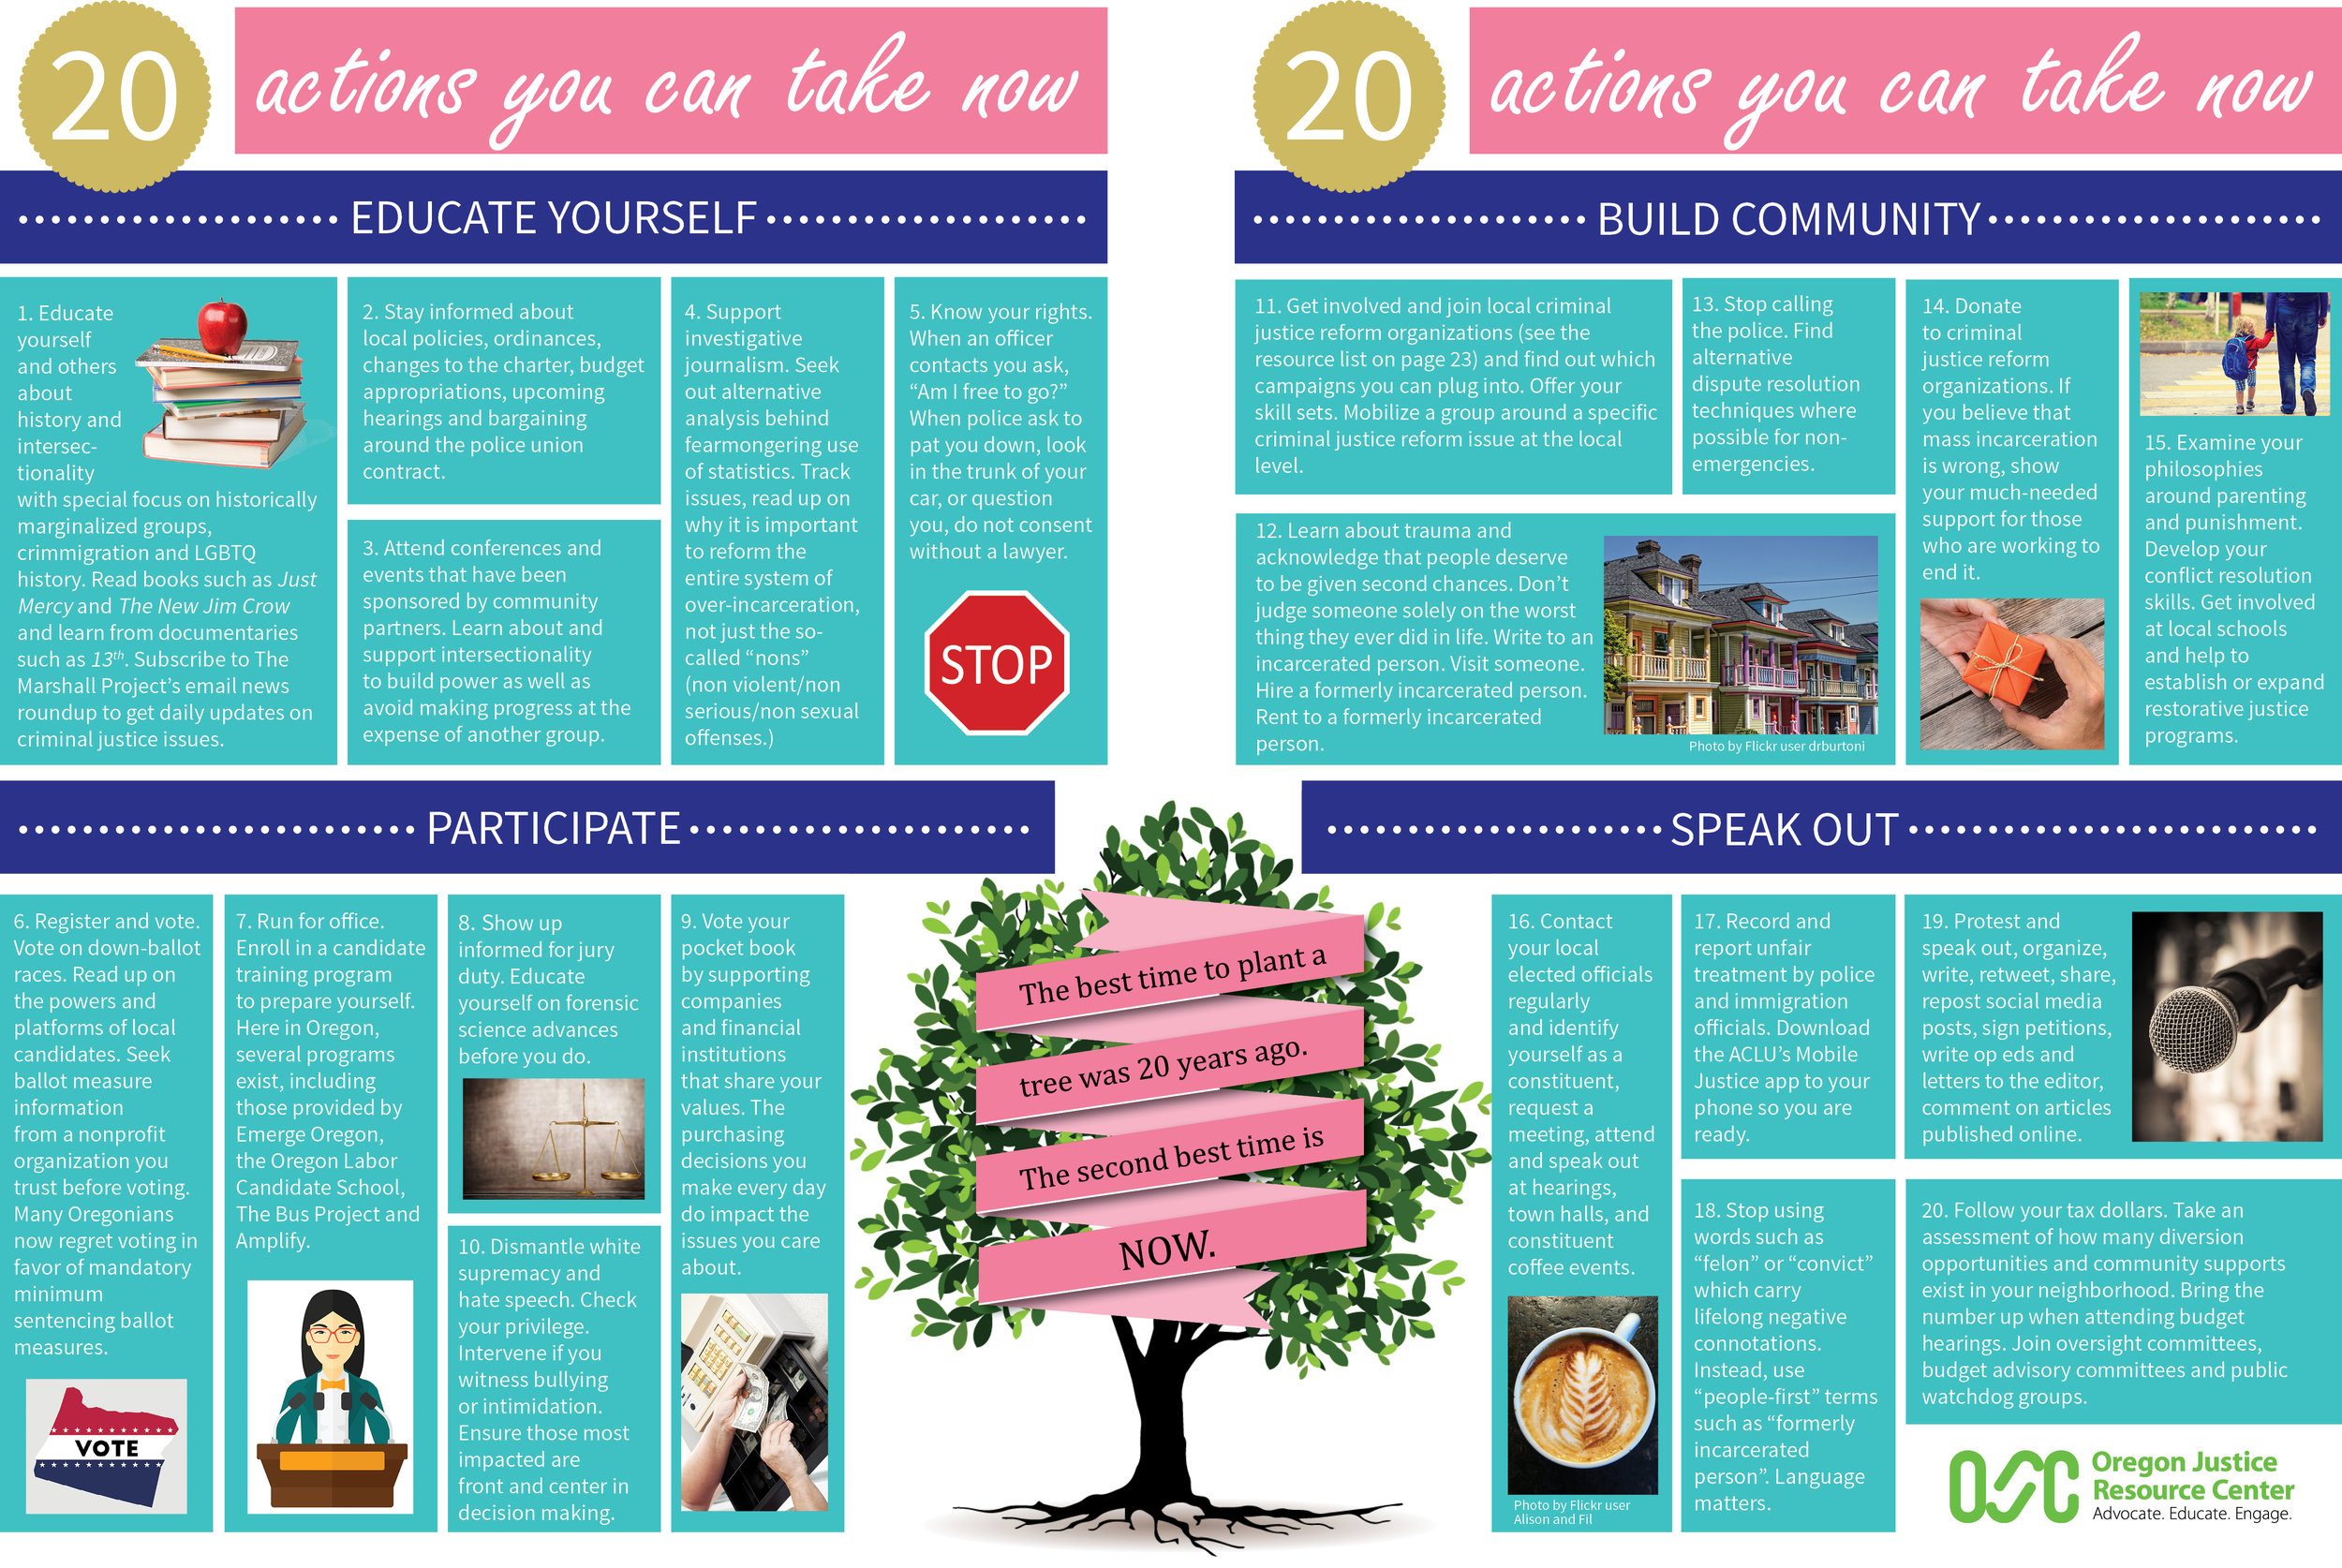 20 Actions You Can Take Now (PDF)